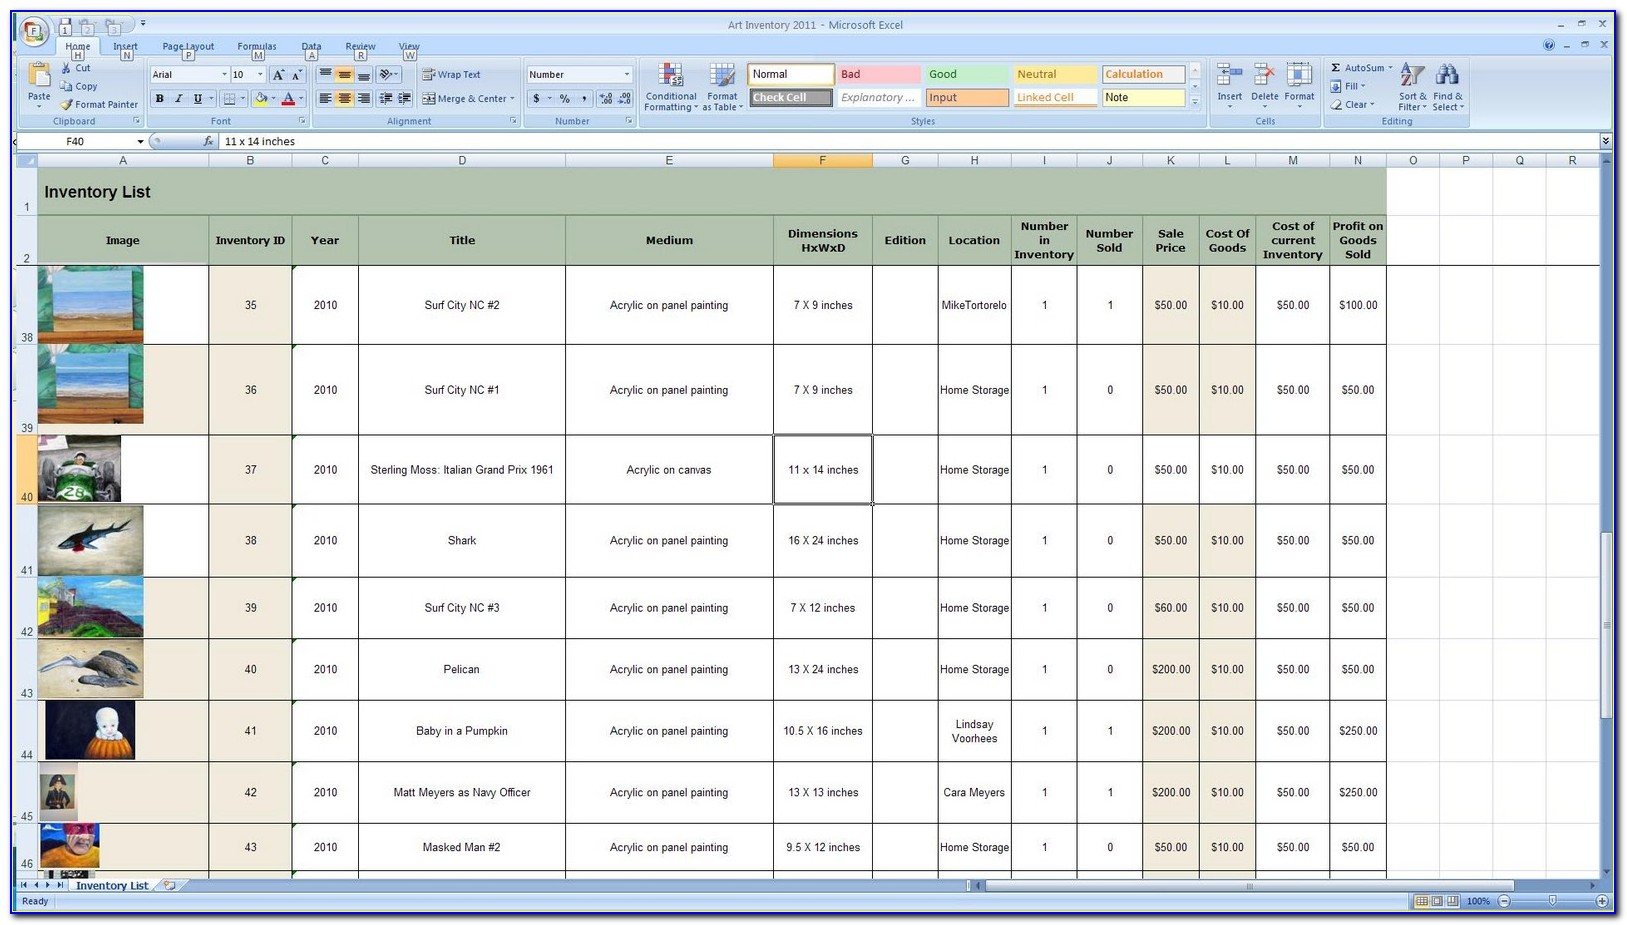 Stock Control Spreadsheet Template Free Intended For Sales And Inventory Management Spreadsheet Template Free